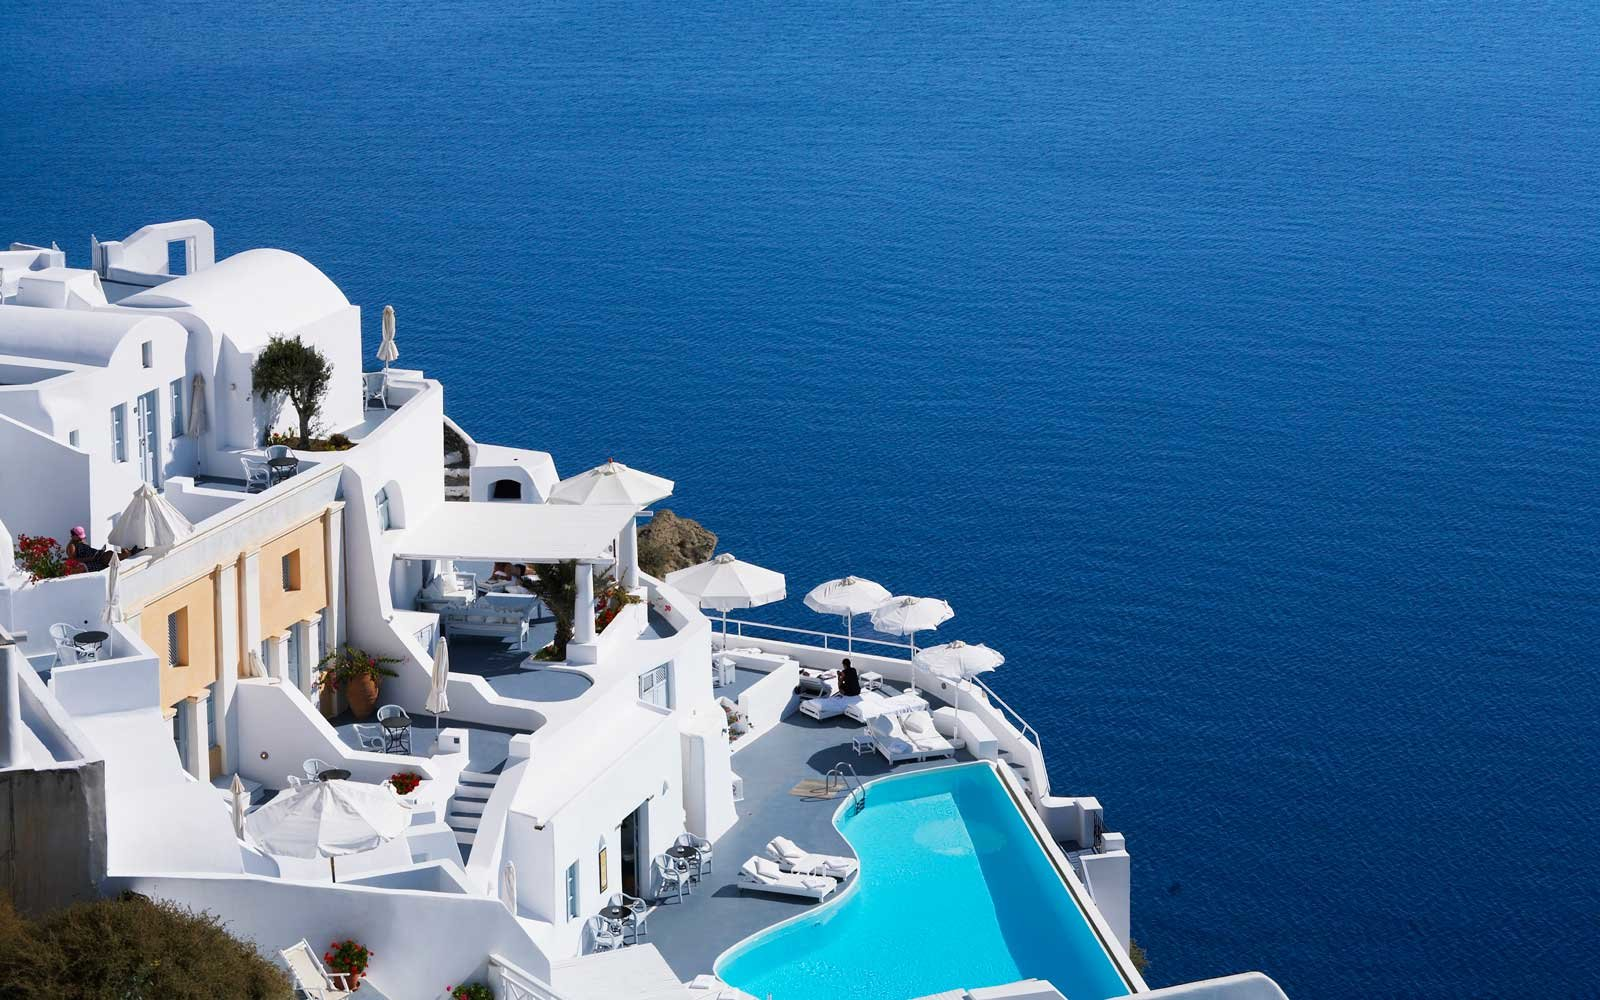 View of the Katikies Hotel in Santorini, Greece